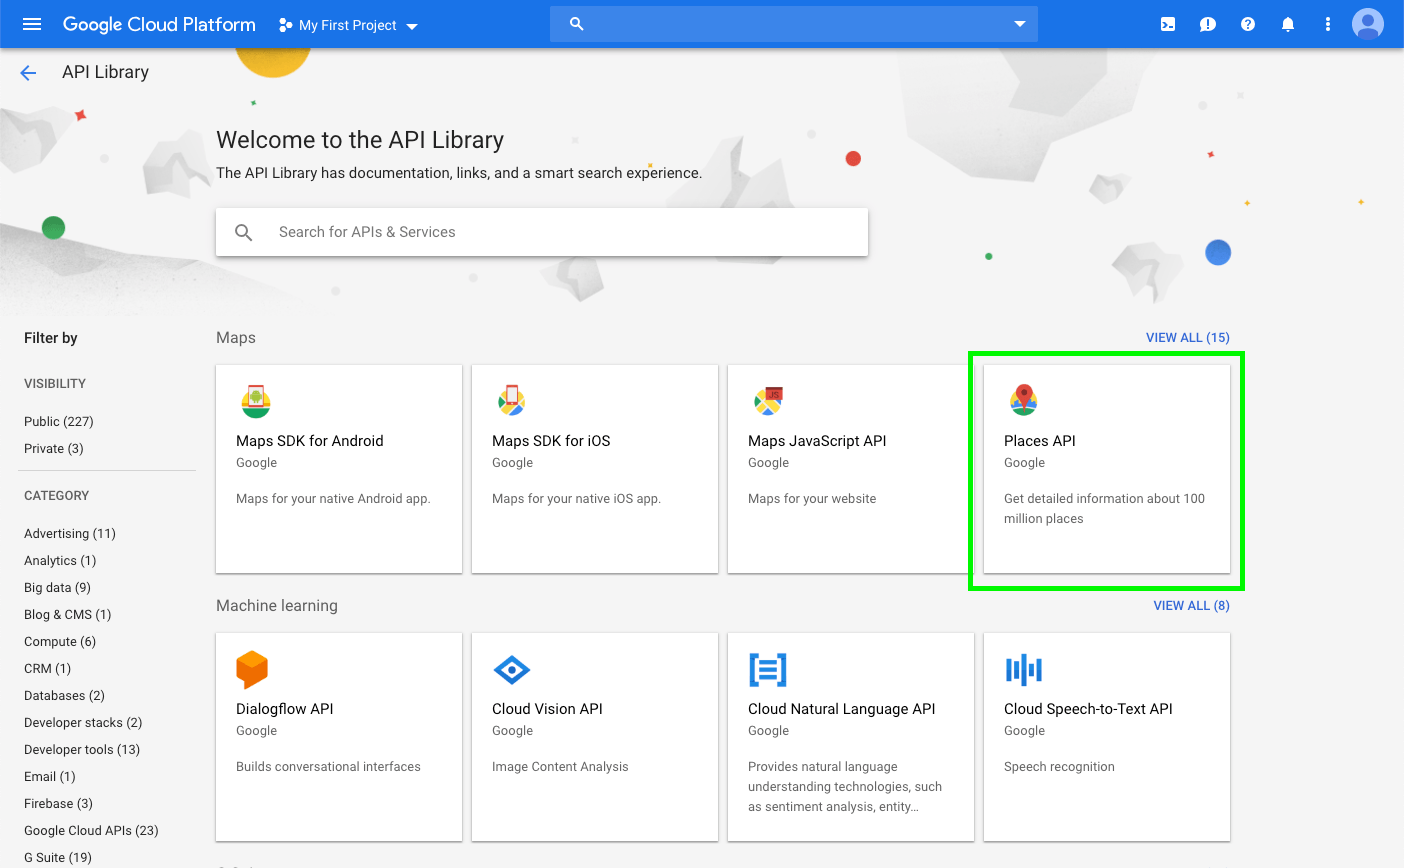 Available Google API services – with 'Places API' highlighted